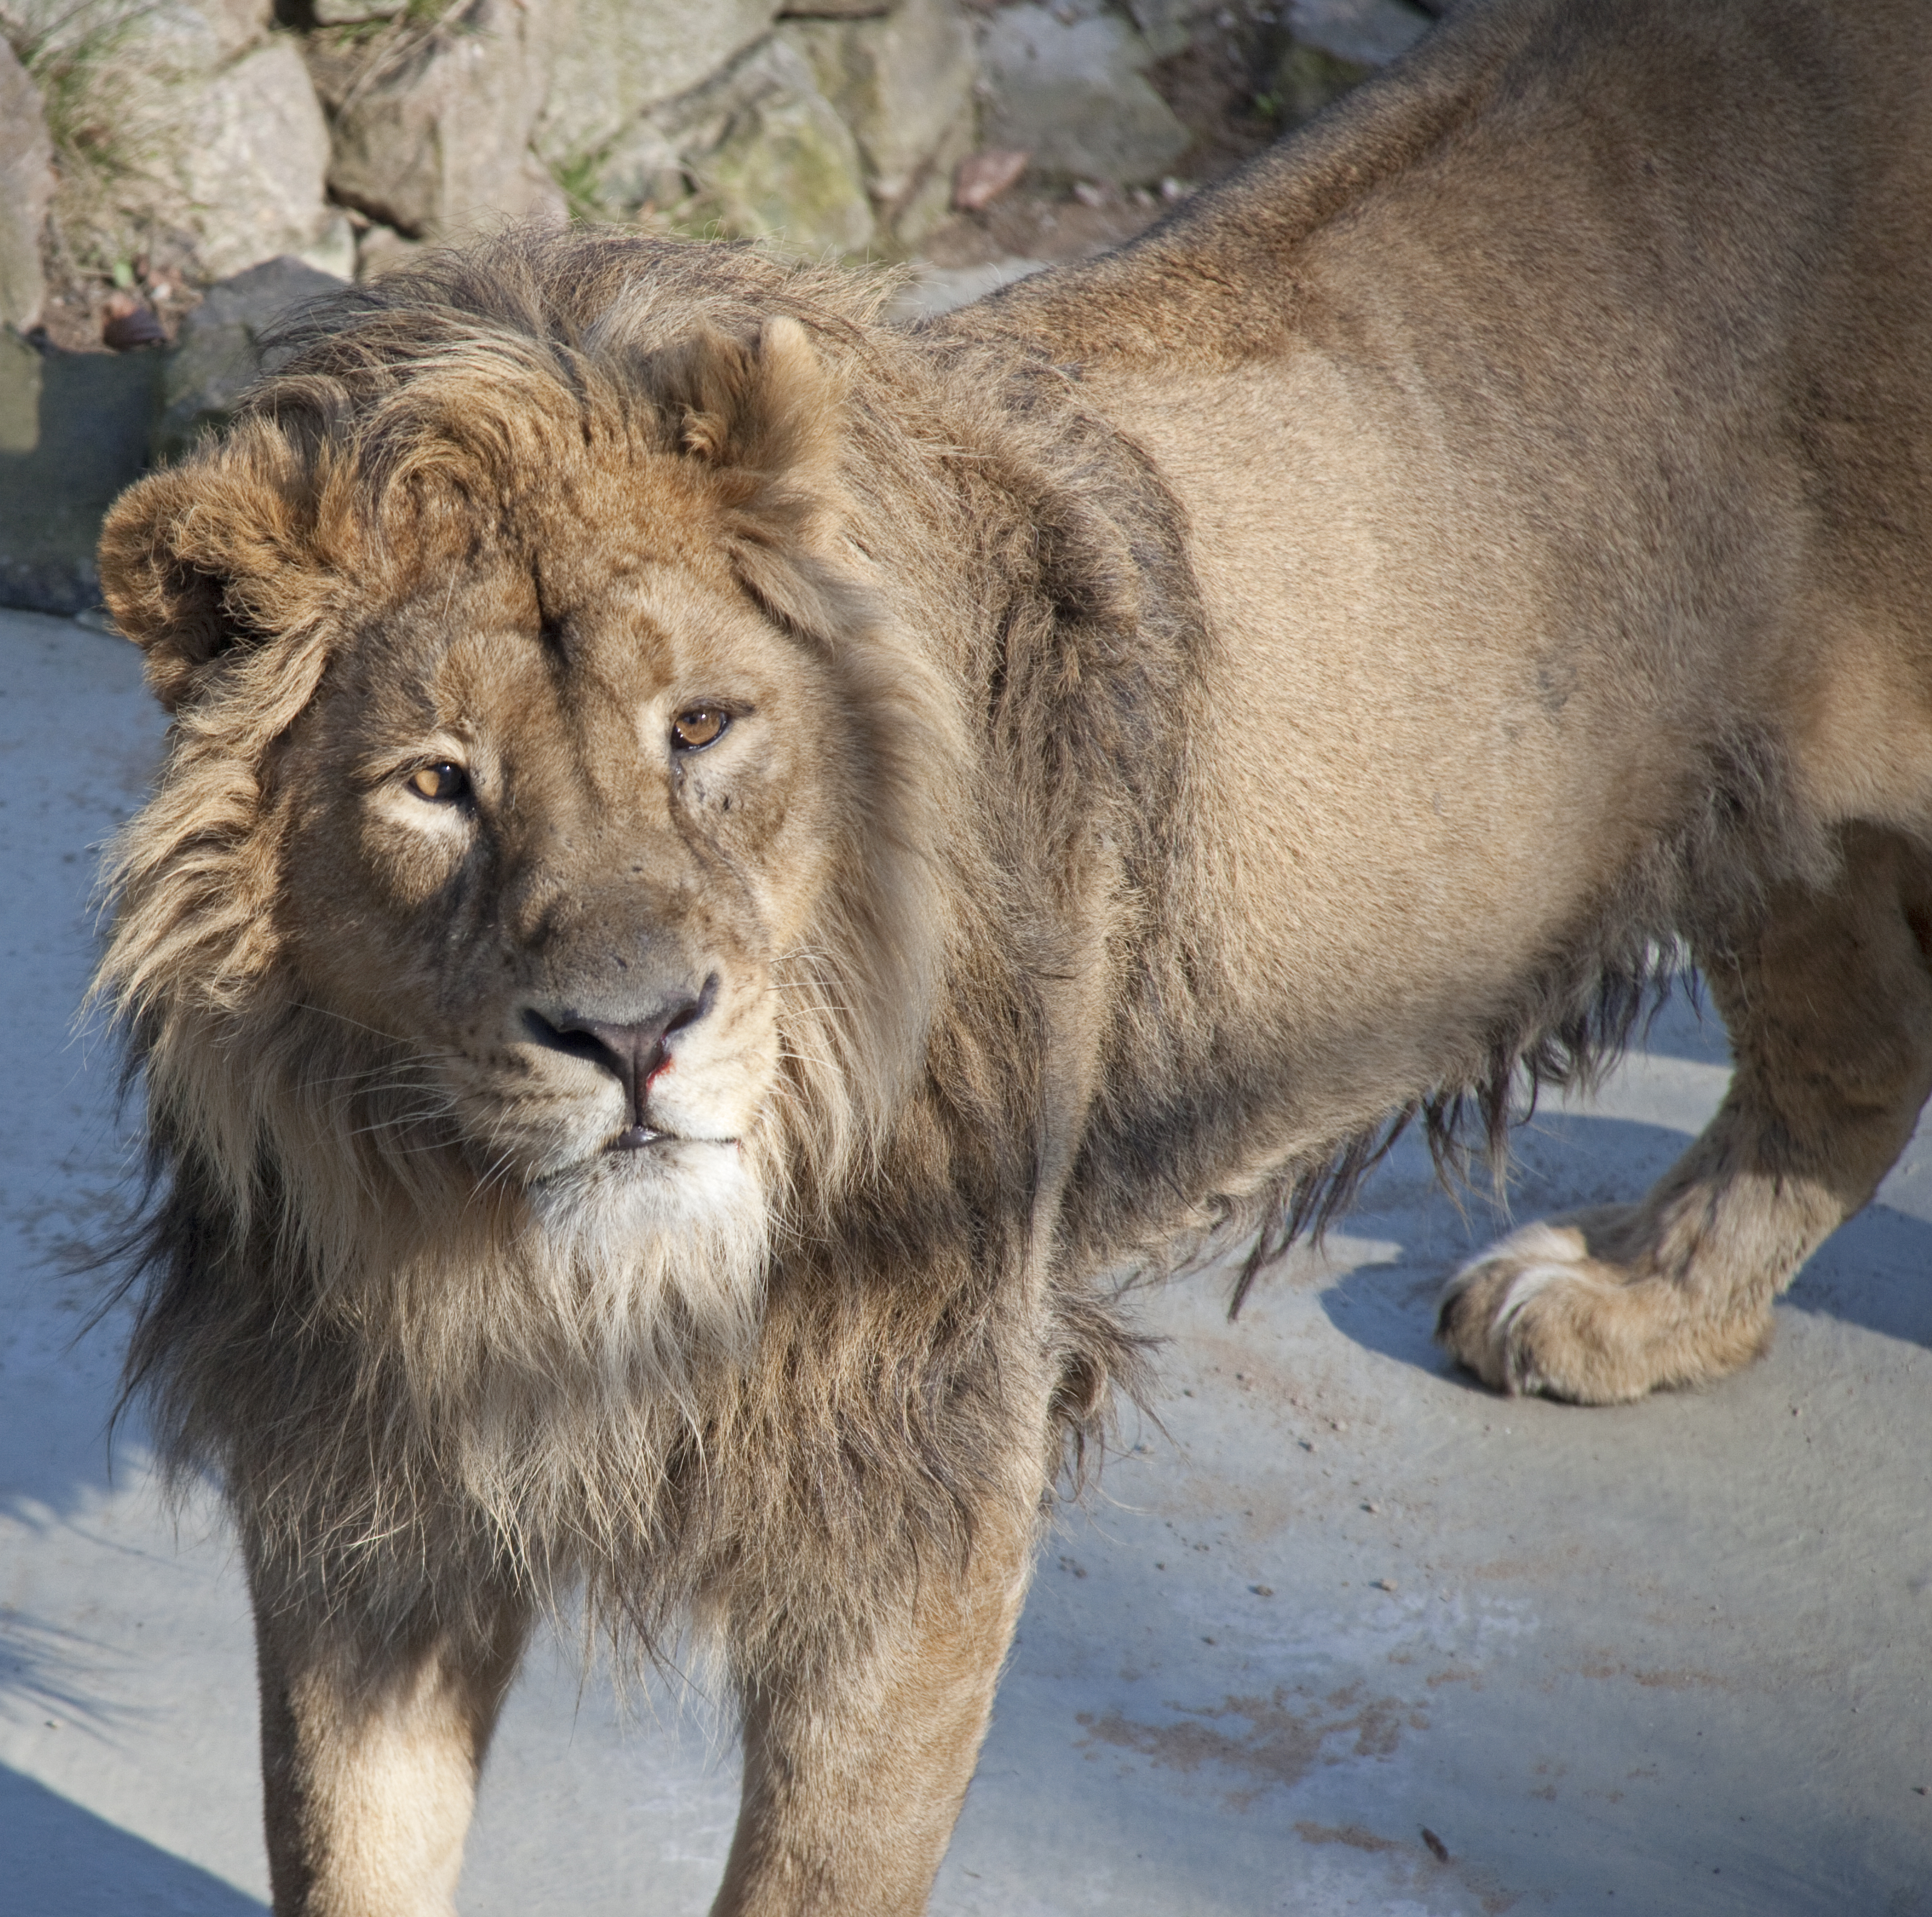 lion and asiatic lions The endangered asiatic lion, which only lives in one forest in india, has fought back from the verge of extinction, with its population increasing to more than 600, a minister said tuesday hailing a major conservation campaign the lion, which once roamed across southwest asia but is now restricted.